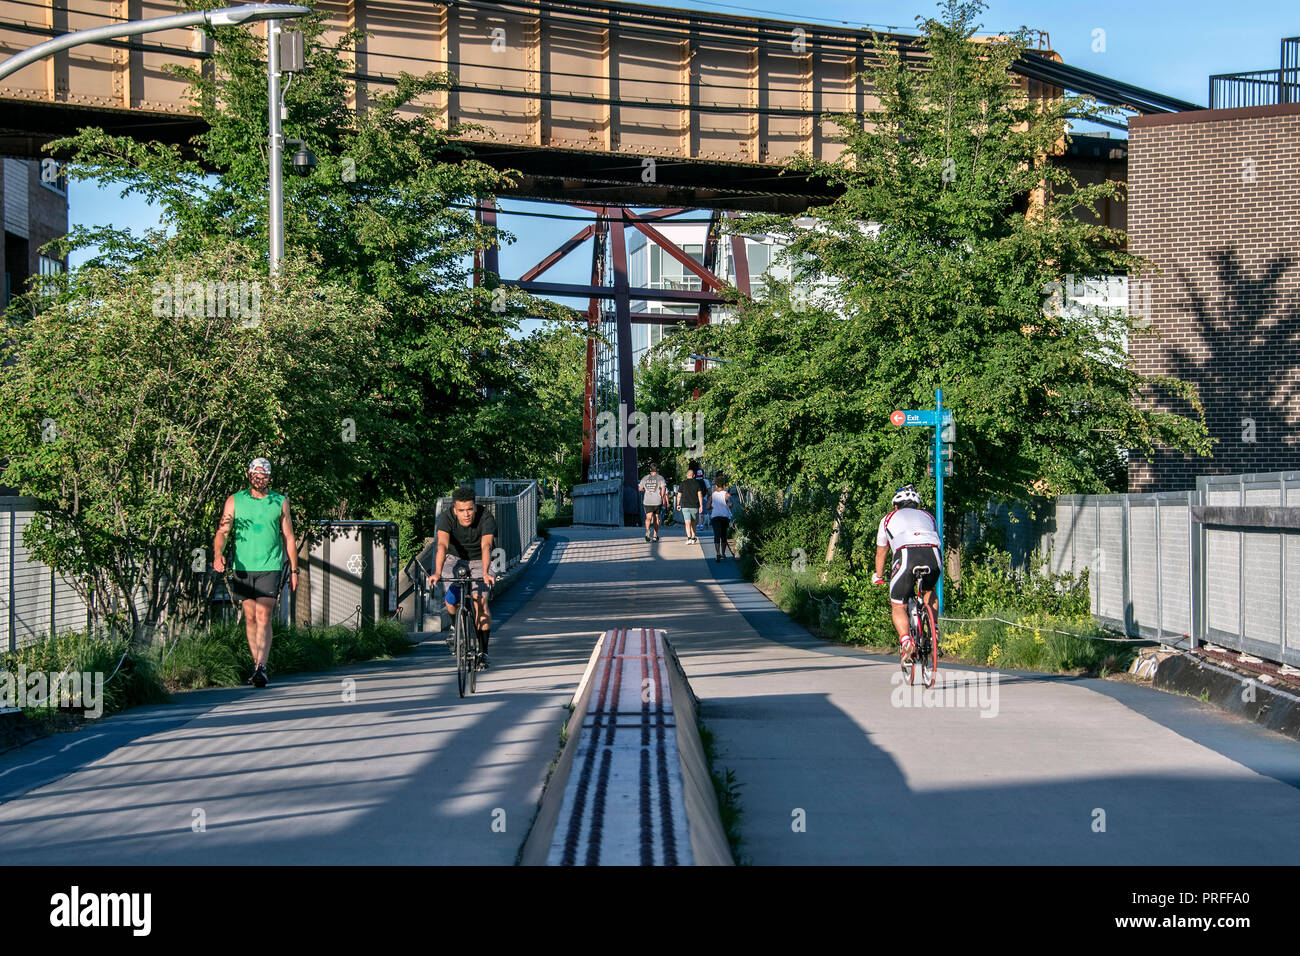 The 606, former elevated train line, greenway for pedestrians and bikers since 2015, Bloomingdale Trail, Wicker Park, Chicago, Illinois, USA - Stock Image